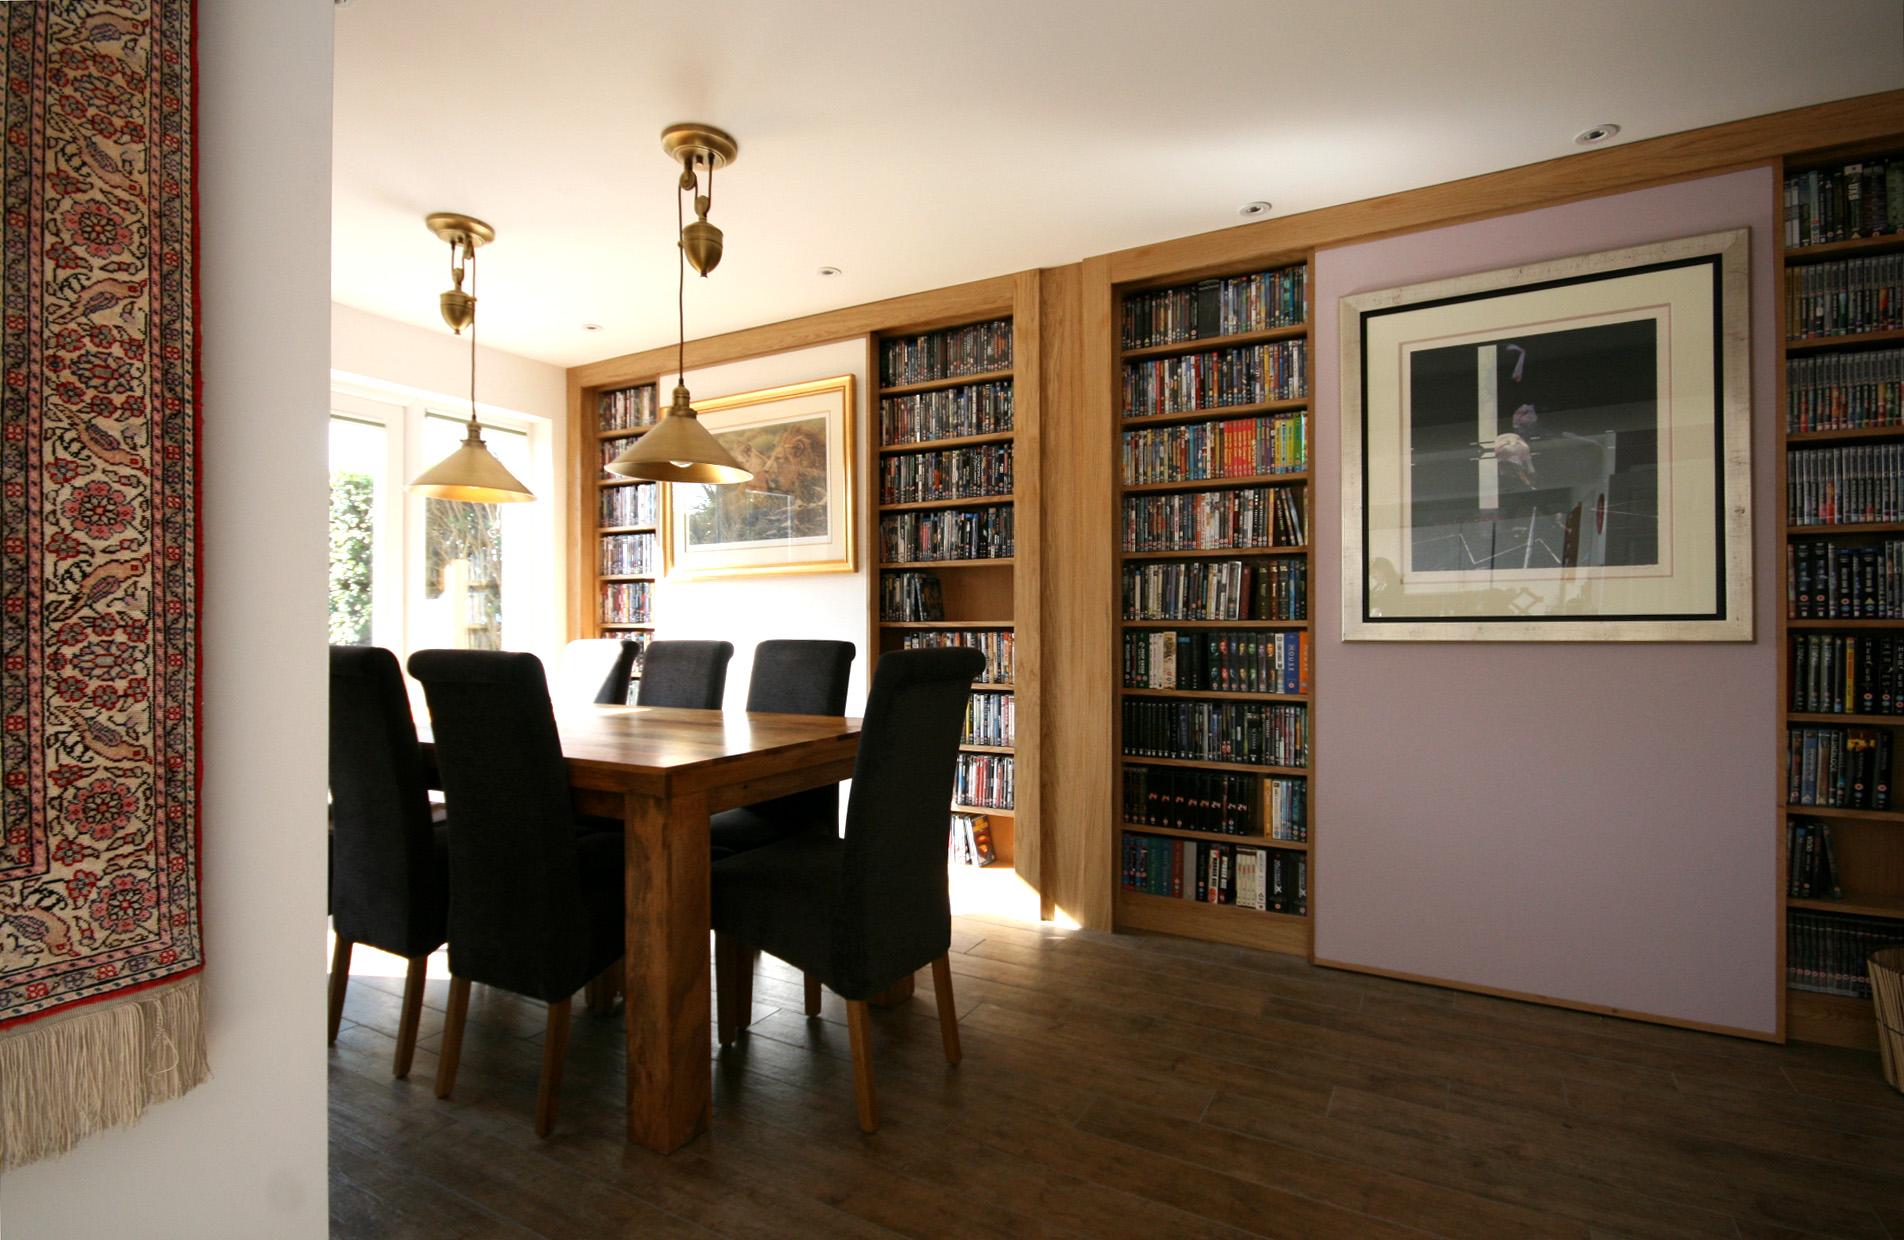 Built in book cases with sliding screens